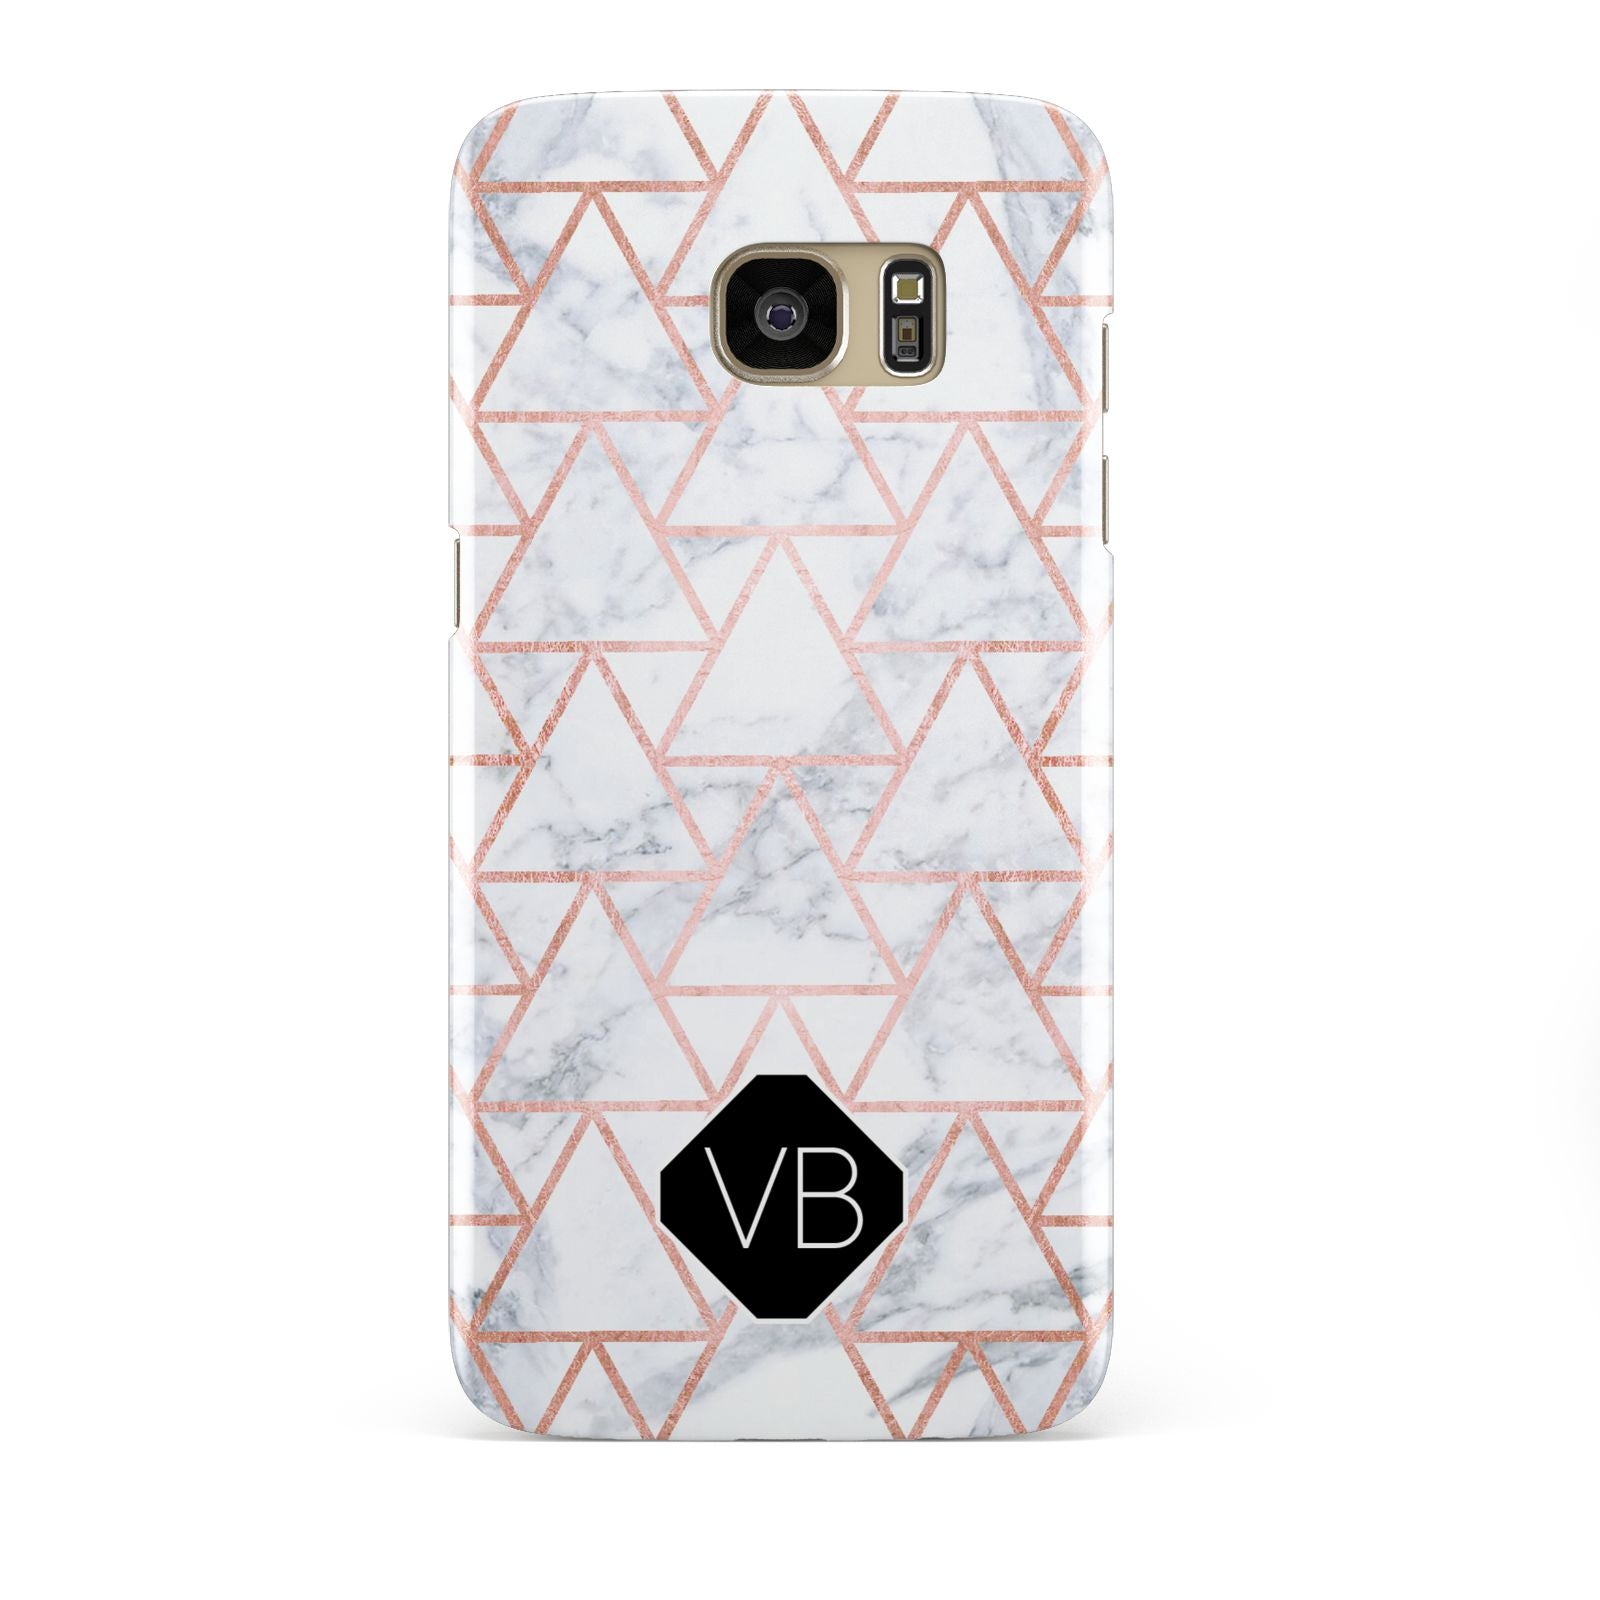 Personalised Rose Gold Grey Marble Hexagon Samsung Galaxy S7 Edge Case